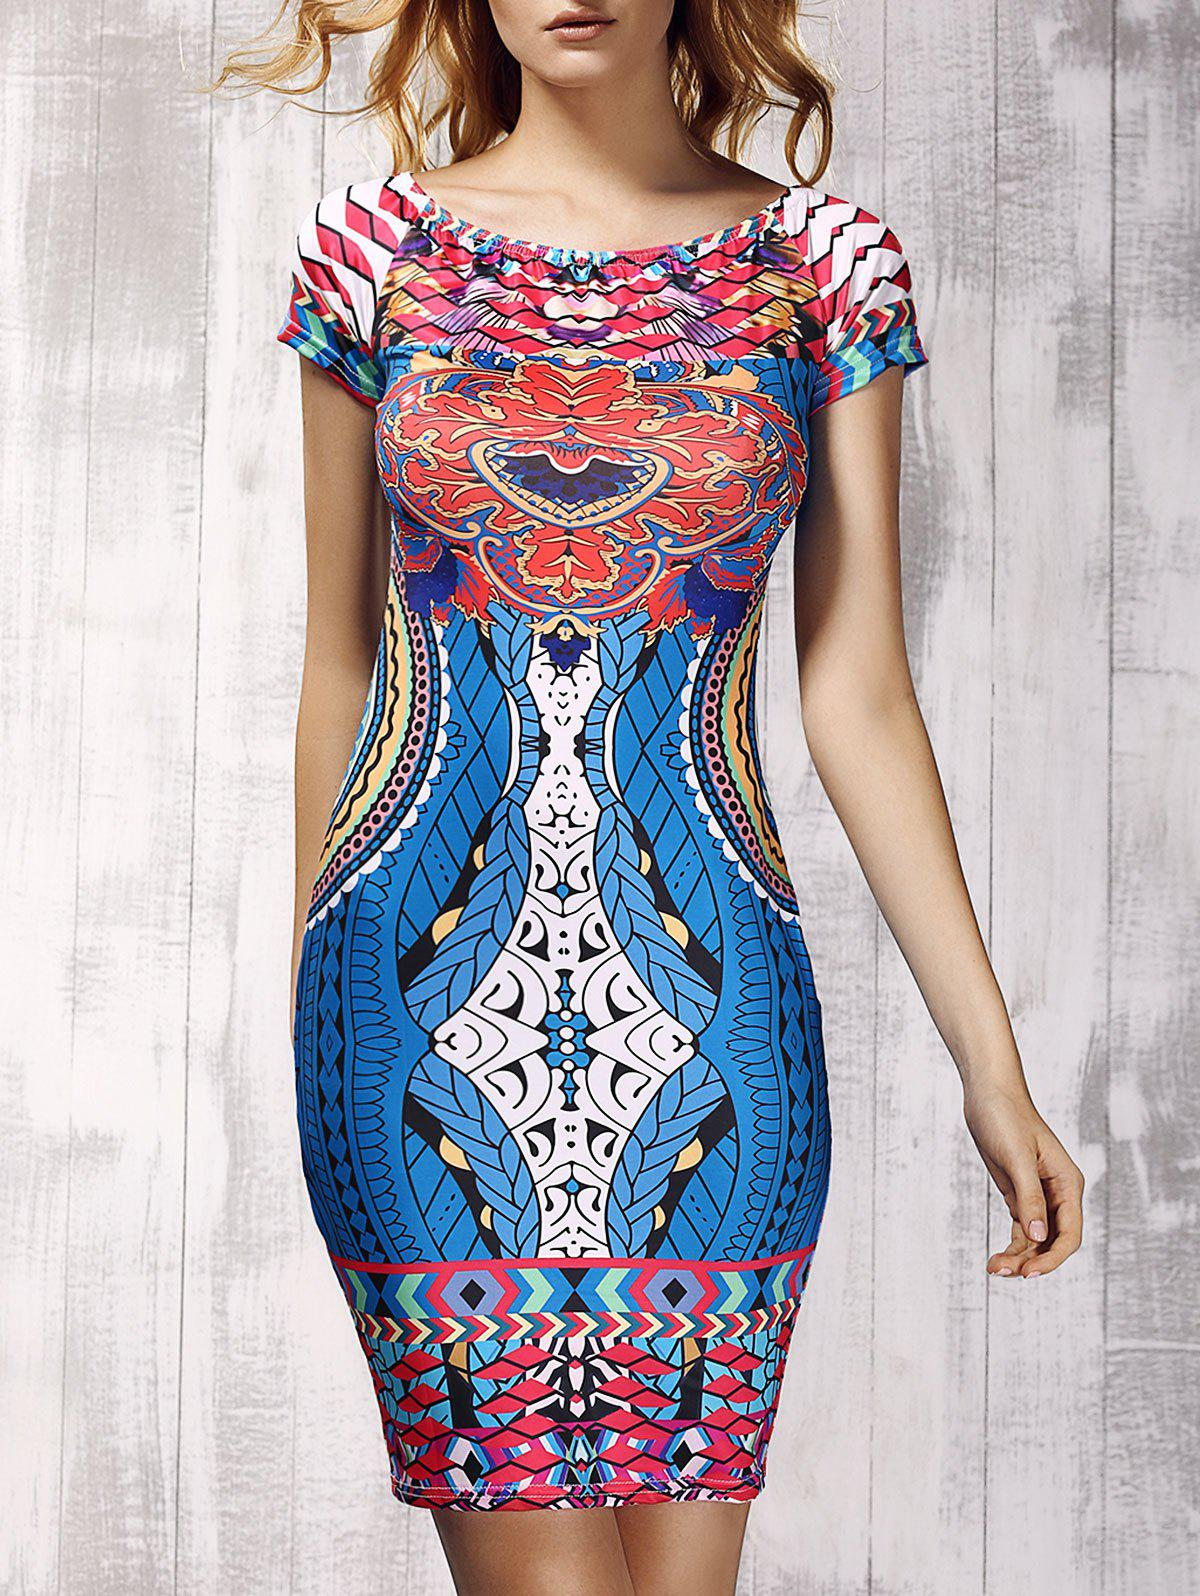 Novelty Off-The-Shoulder Short Sleeves Printed Women's Sheath Dress - COLORMIX M